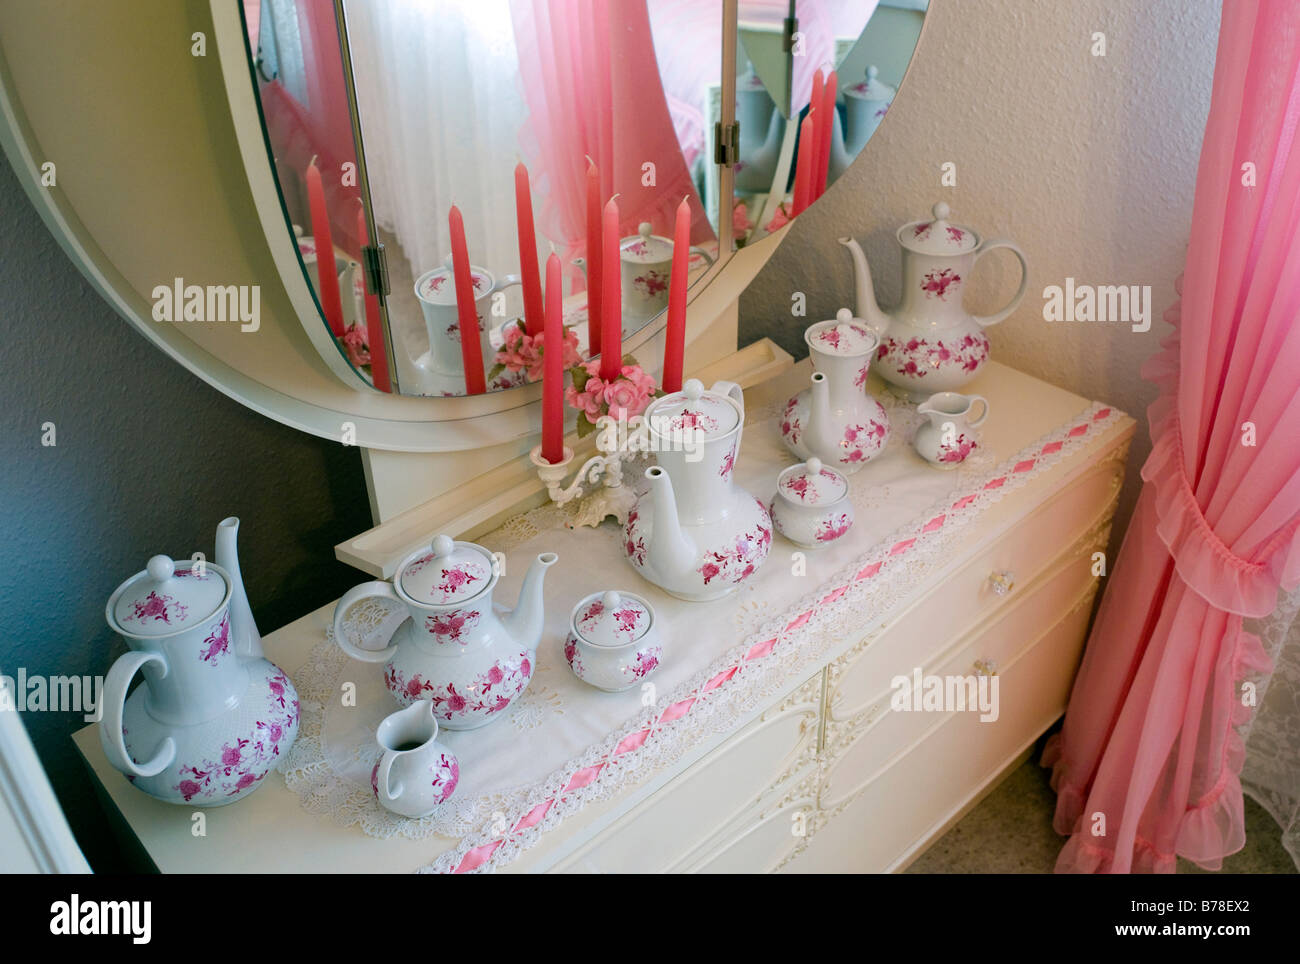 Teapots on a dressing table, Germany, Europe - Stock Image